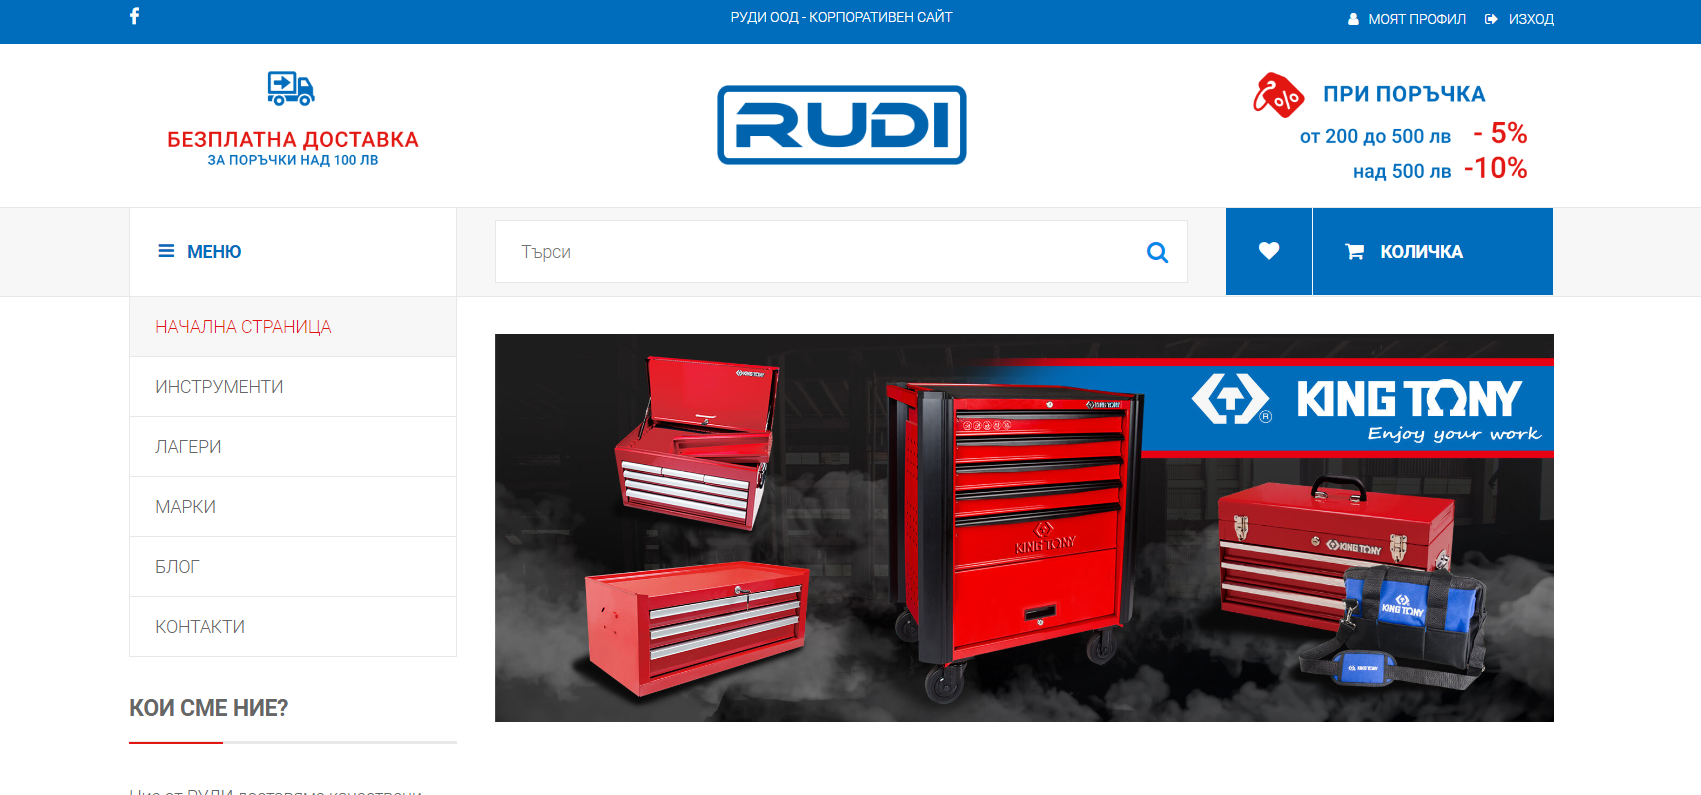 RUDI online store - REVAMPED